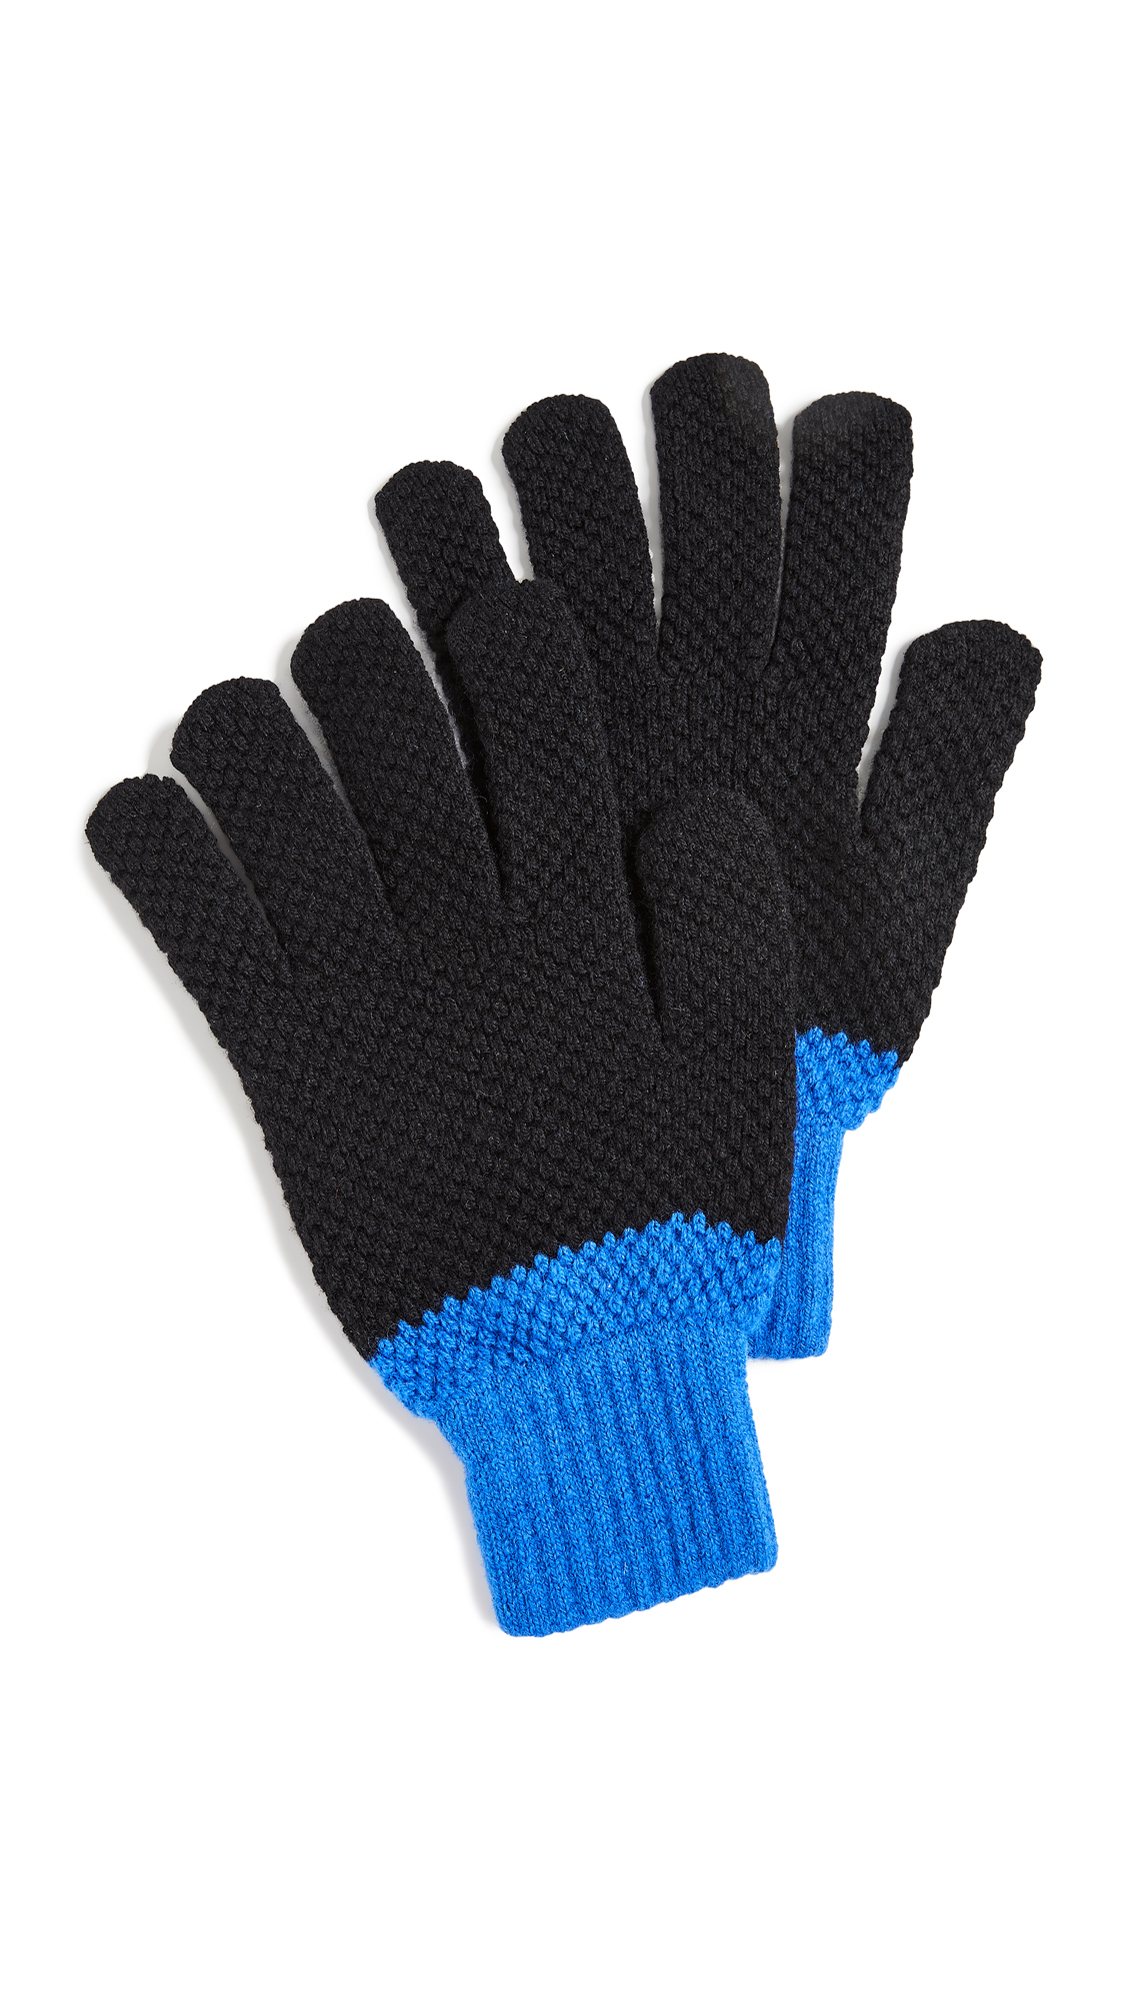 PAUL SMITH Cable Highlight Gloves in Black/Blue